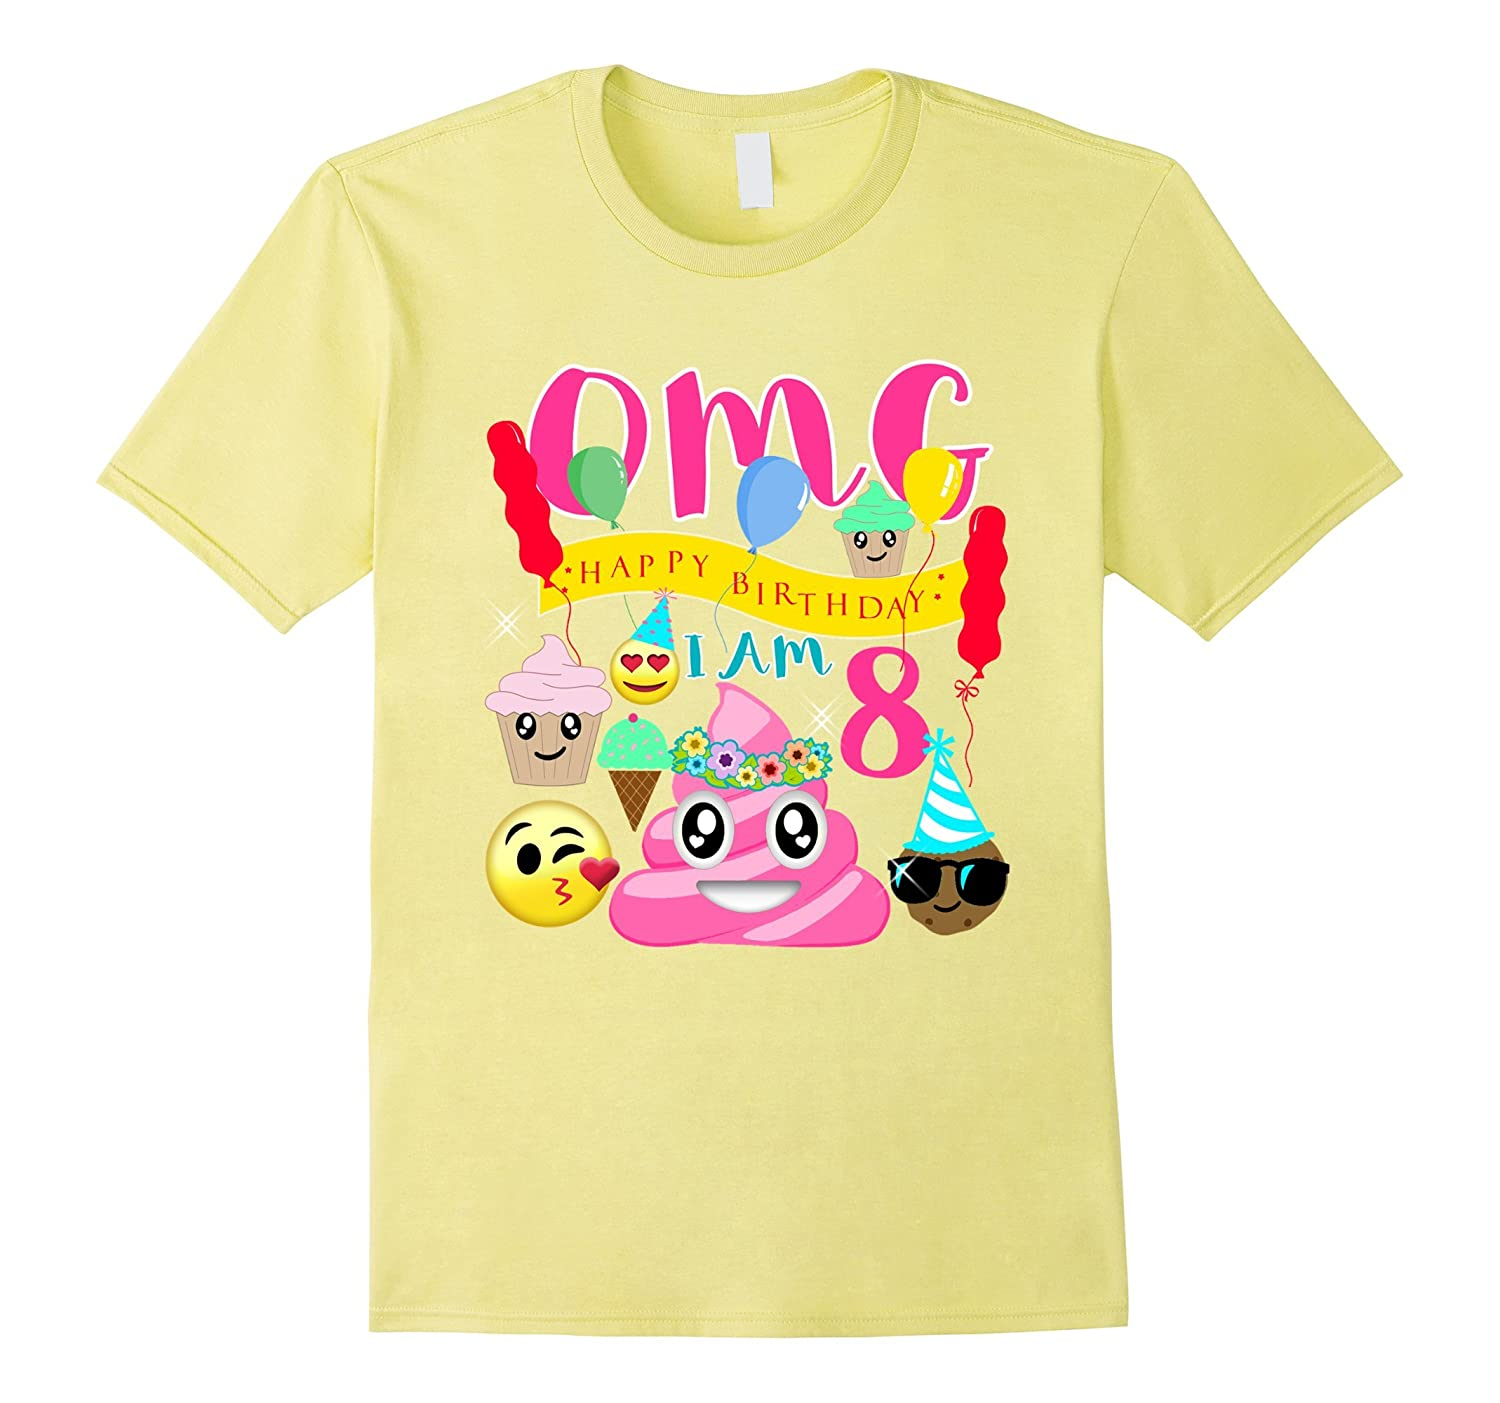 Pink Poo Emoji Poop Birthday Shirt 8th Party 8 Years Old ANZ